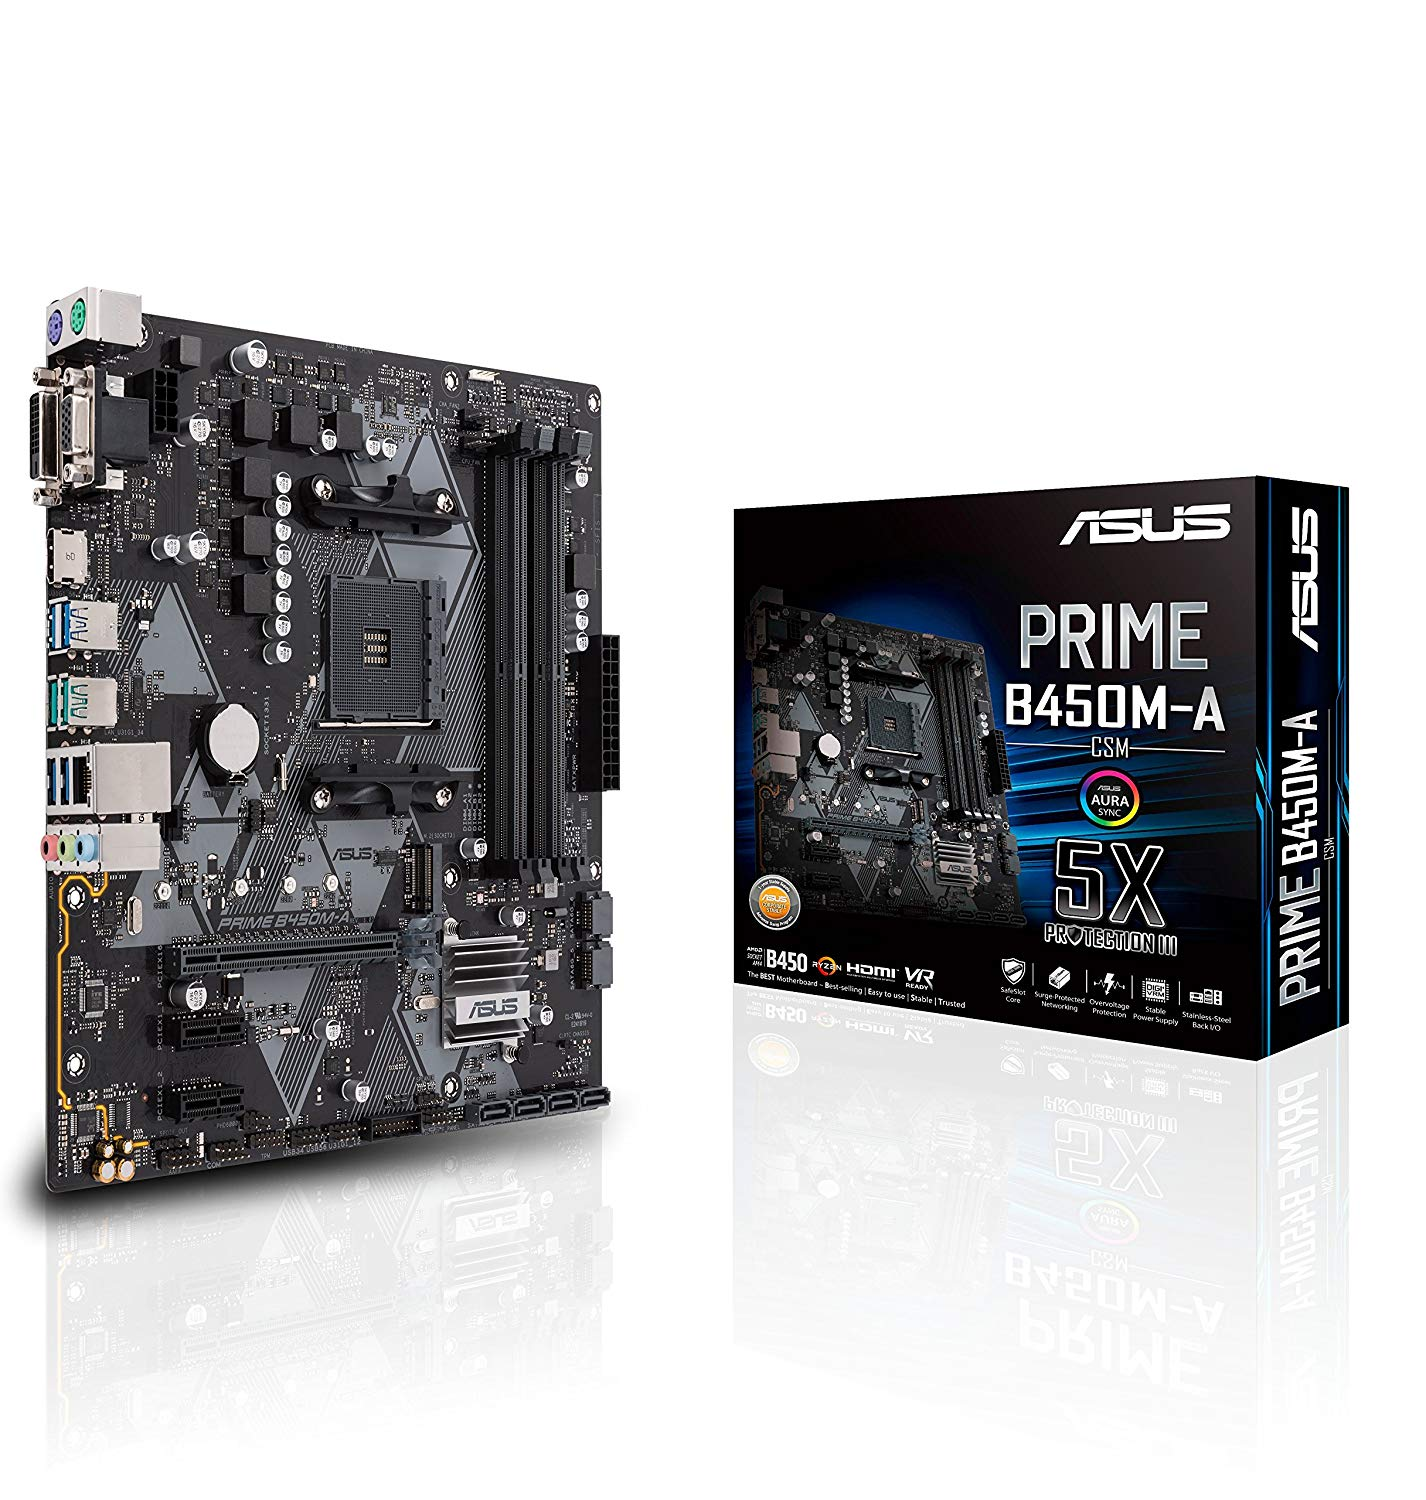 MB ASUS AMD PRIME B450M-A AM4 RGB DDR4 3200MHz M.2 HDMI SATA 6Gbps and USB 3.1+CPU AMD RYZEN 5 3400G 3.7 UP 4.2GHZ 6M CACHE 4 CORE 8THREAD VEGA11 ,Desktop Mainboard